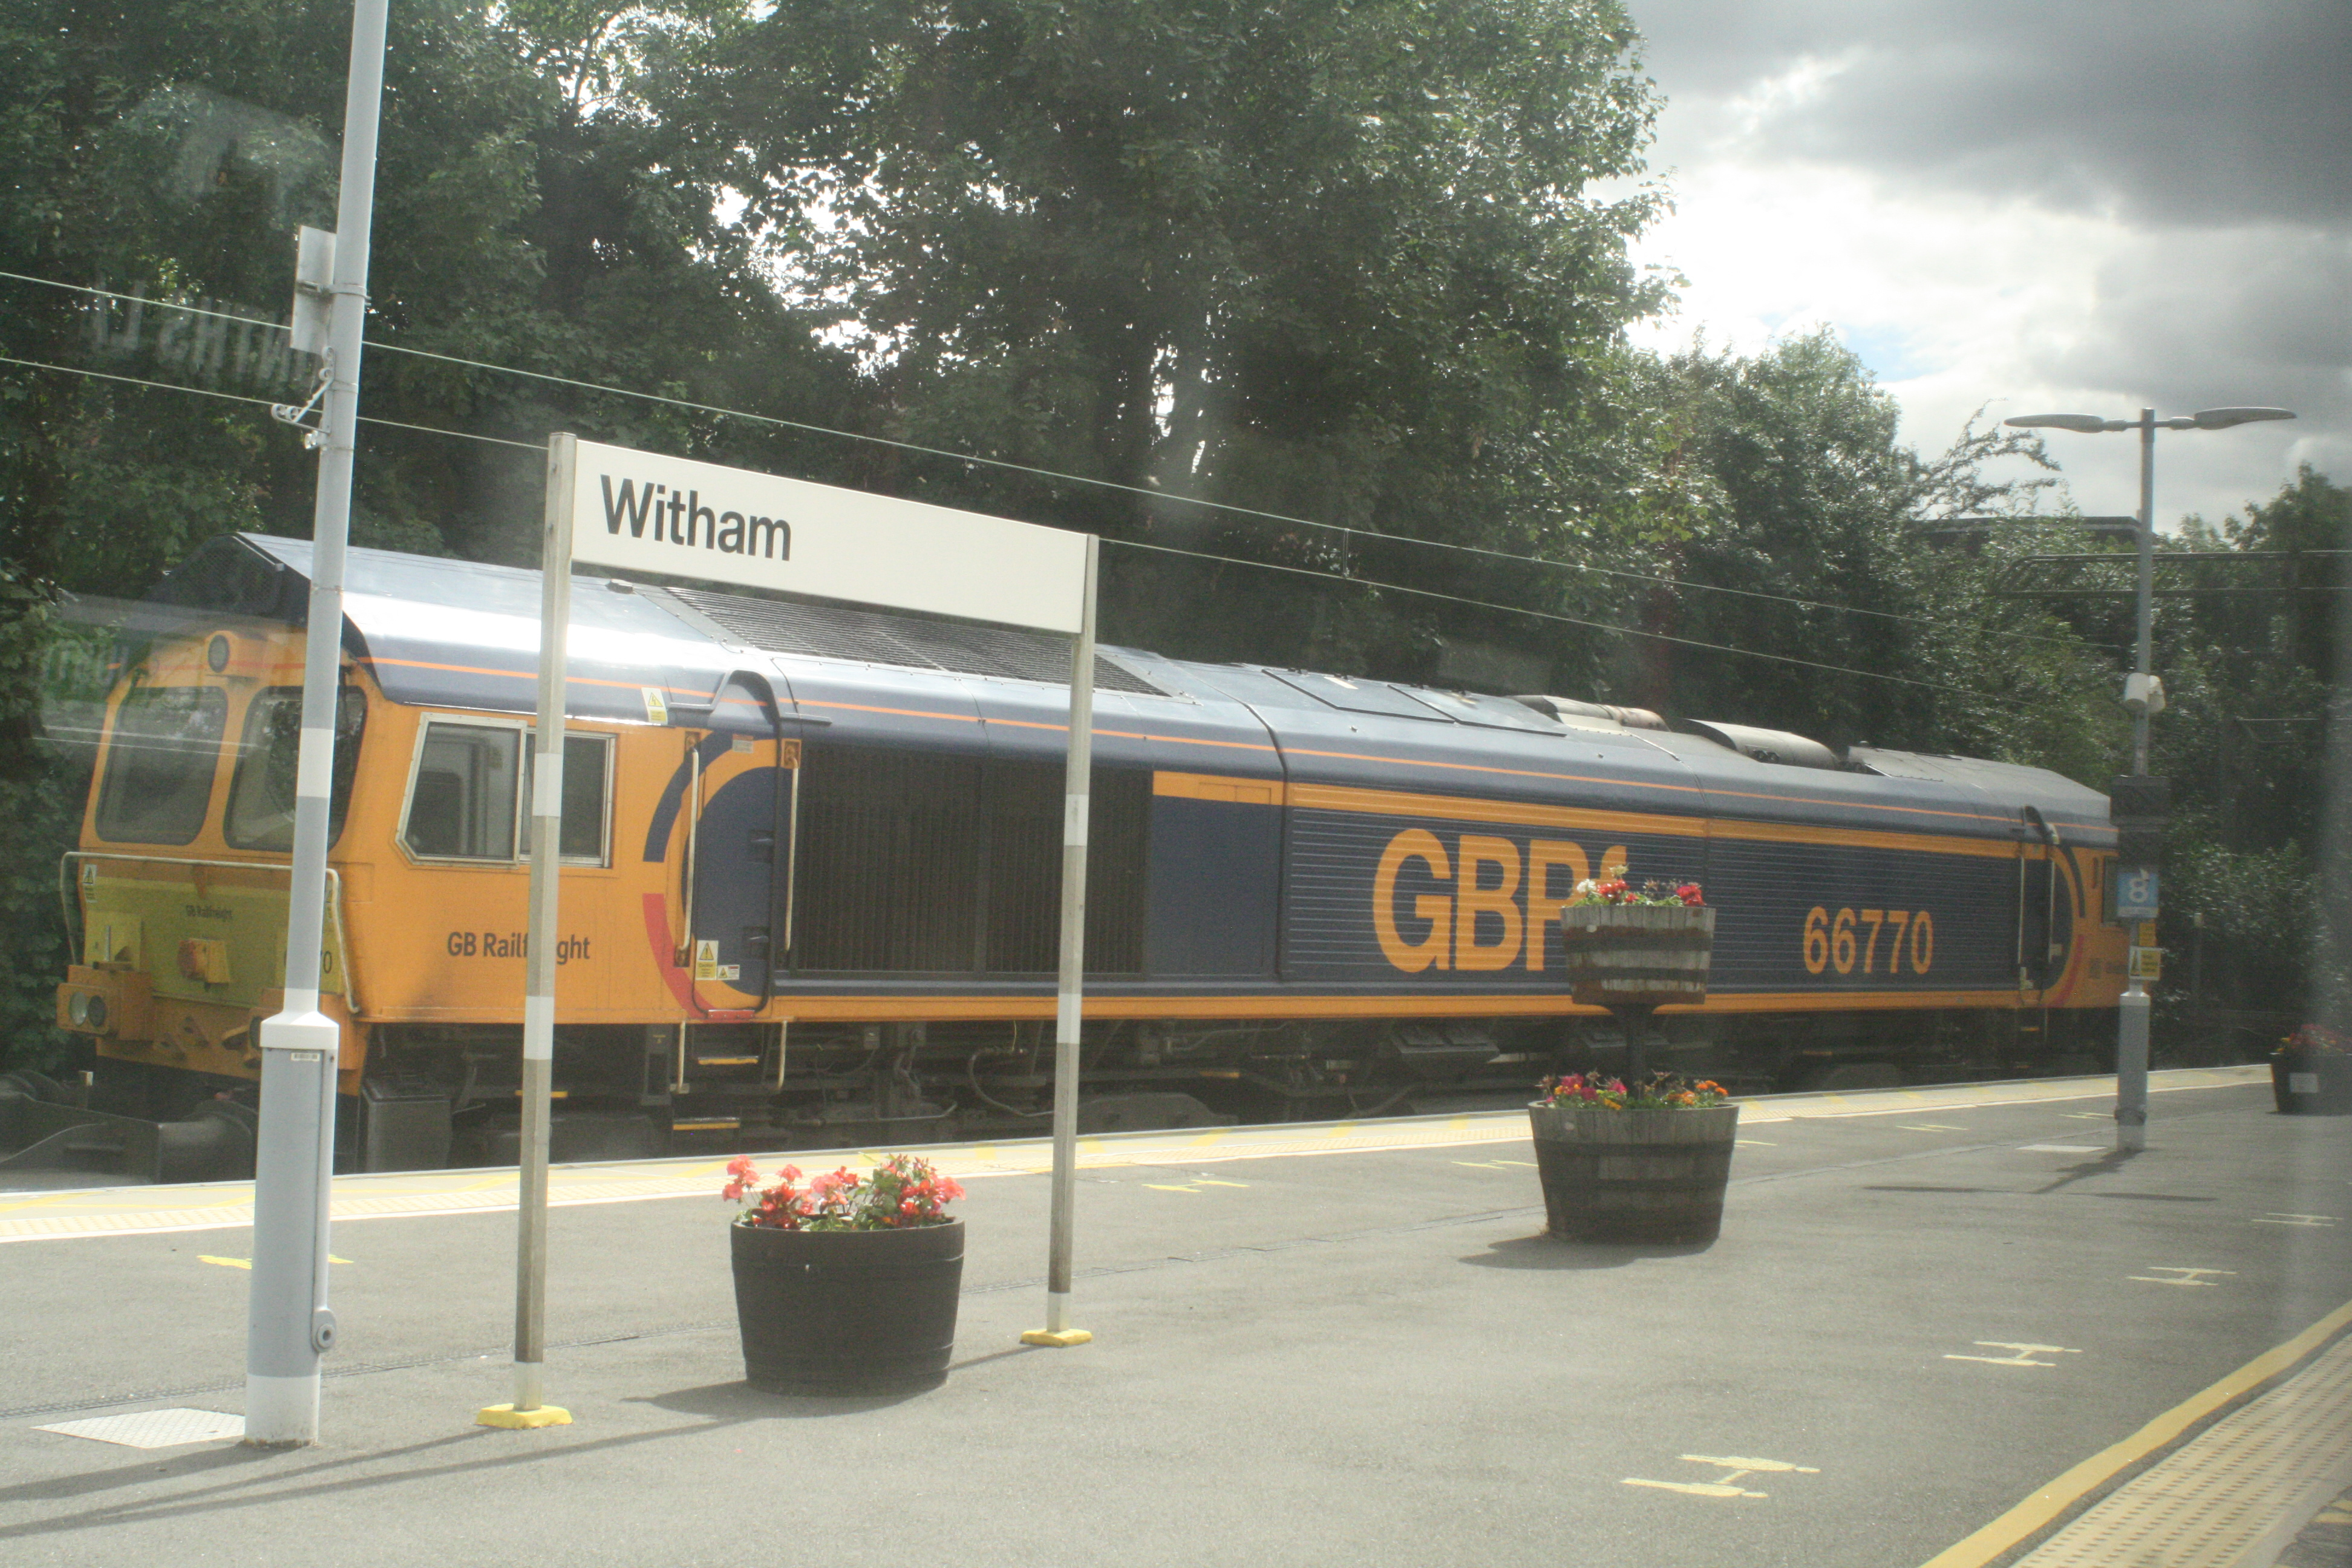 66770 GBRf (WITHAM) 1-8-20